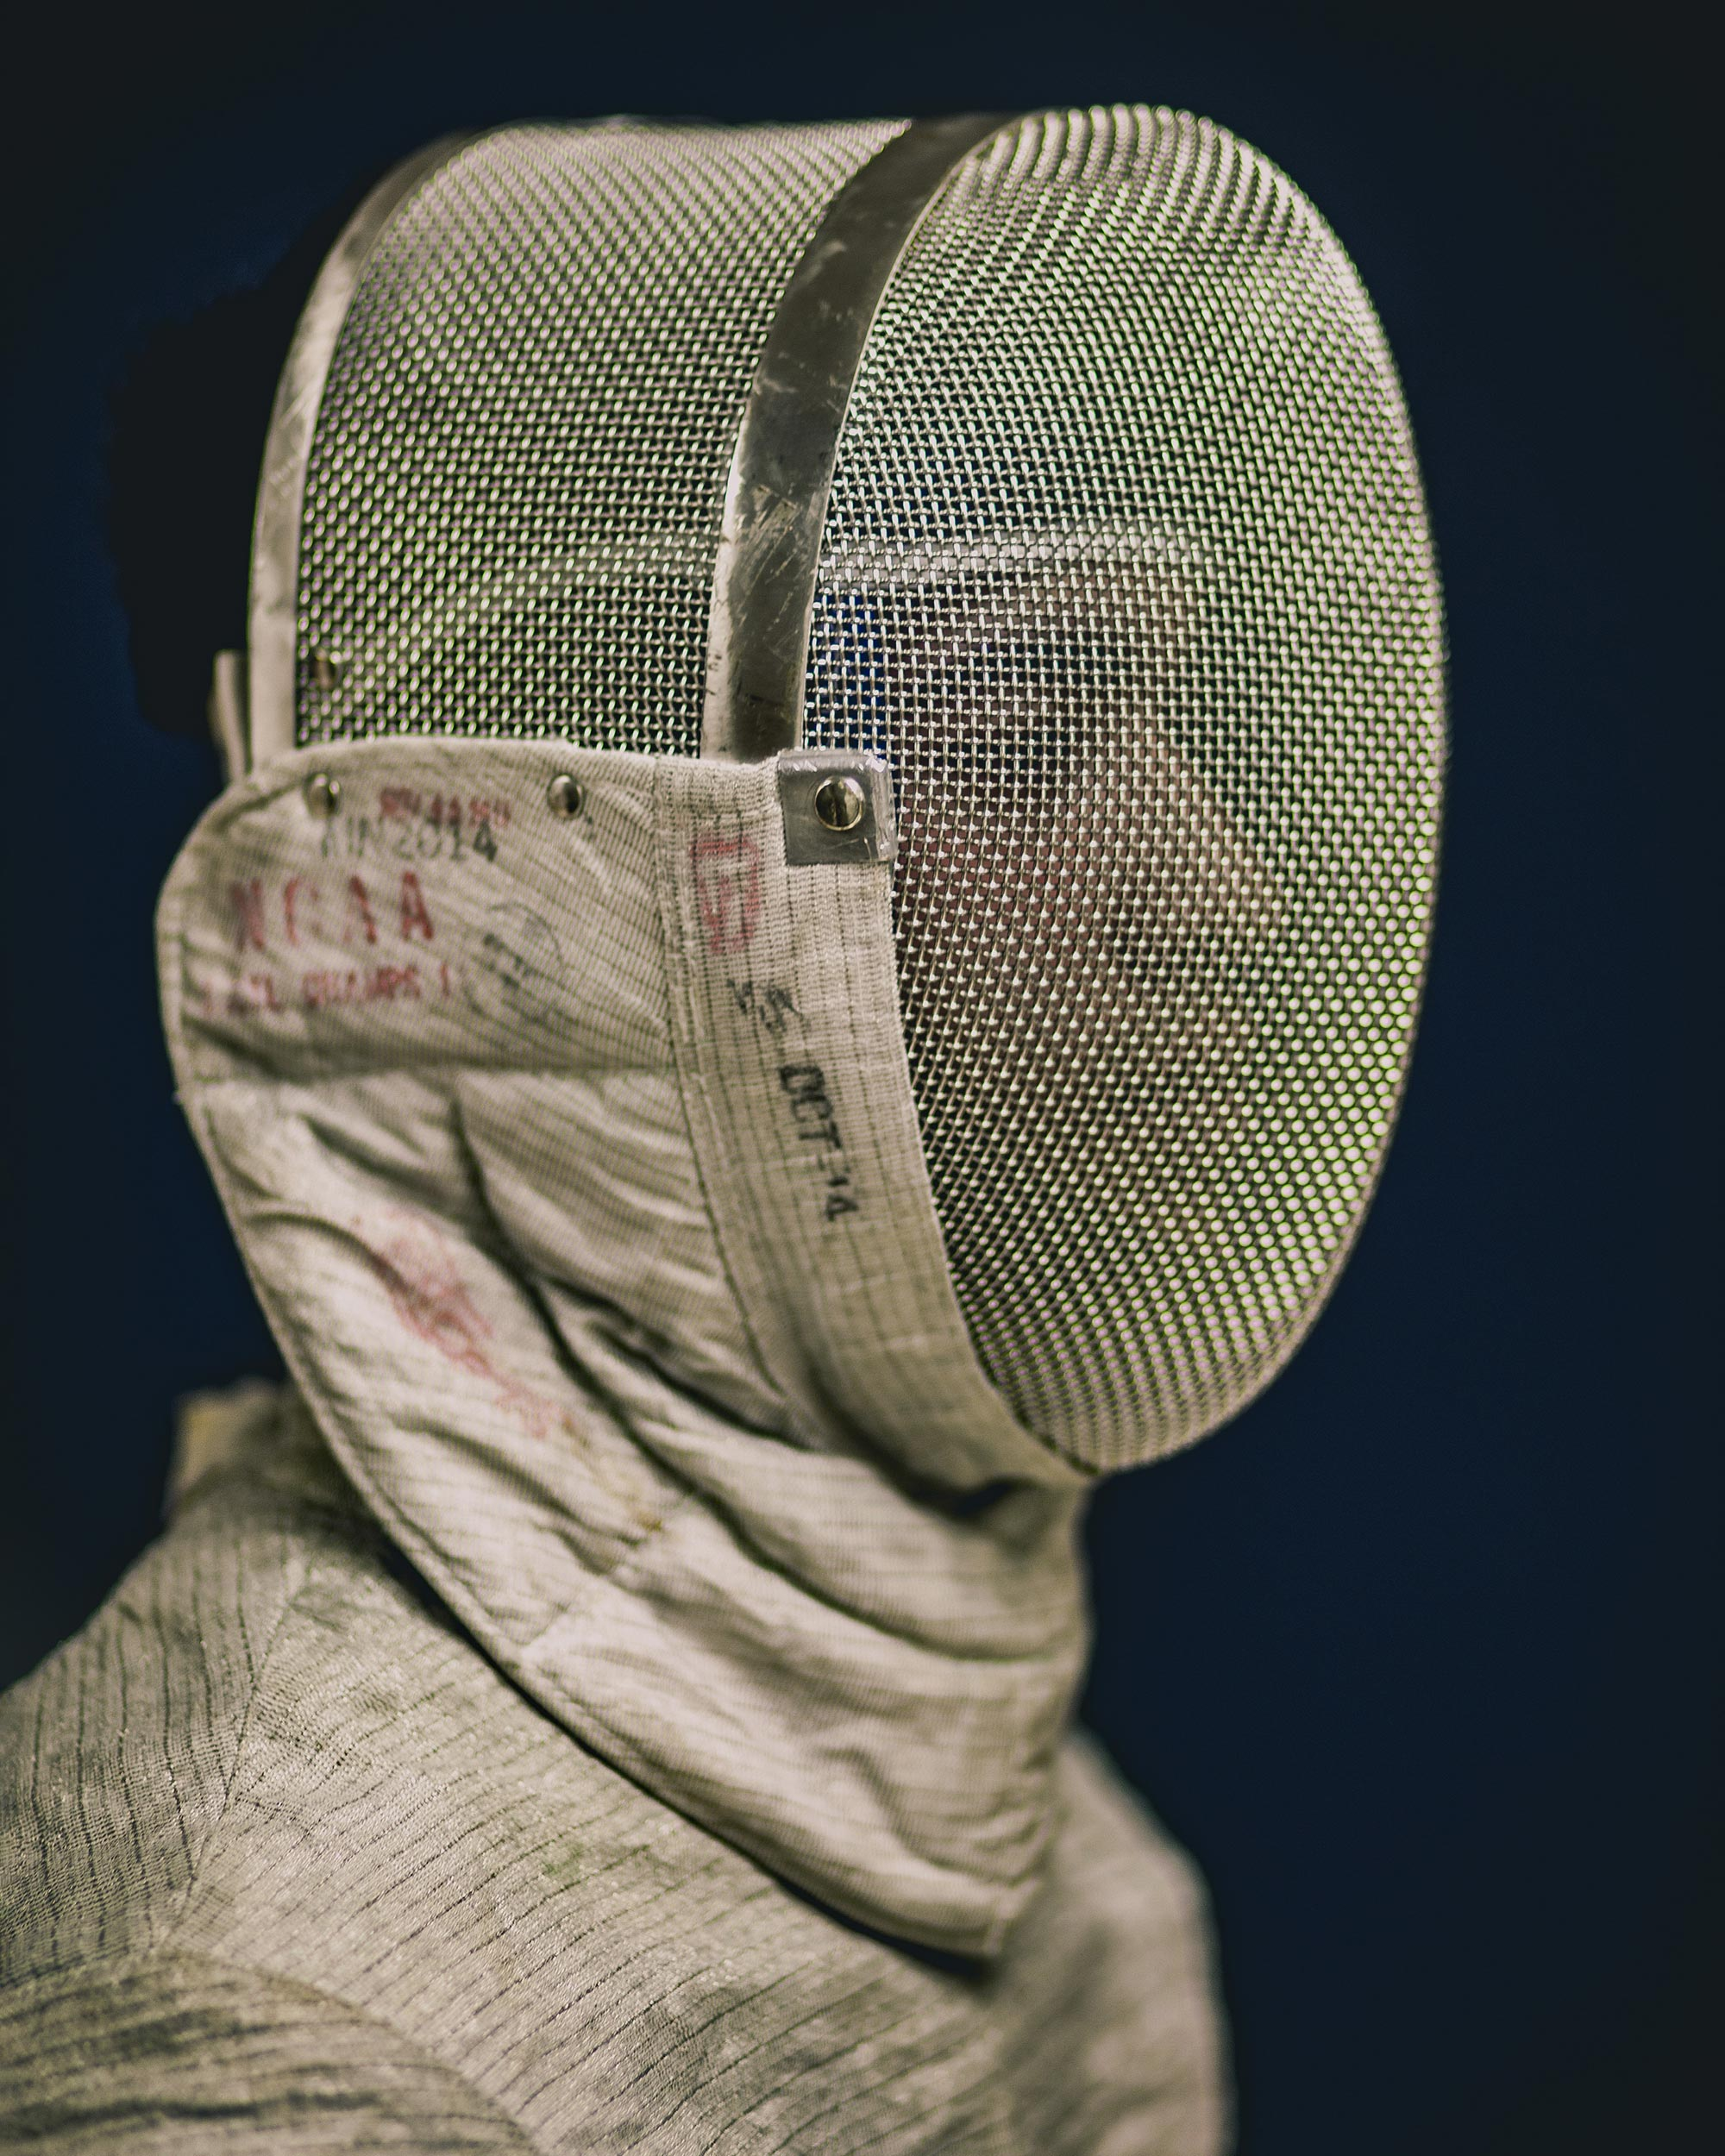 cardoni_fencing_mask_MG_8688